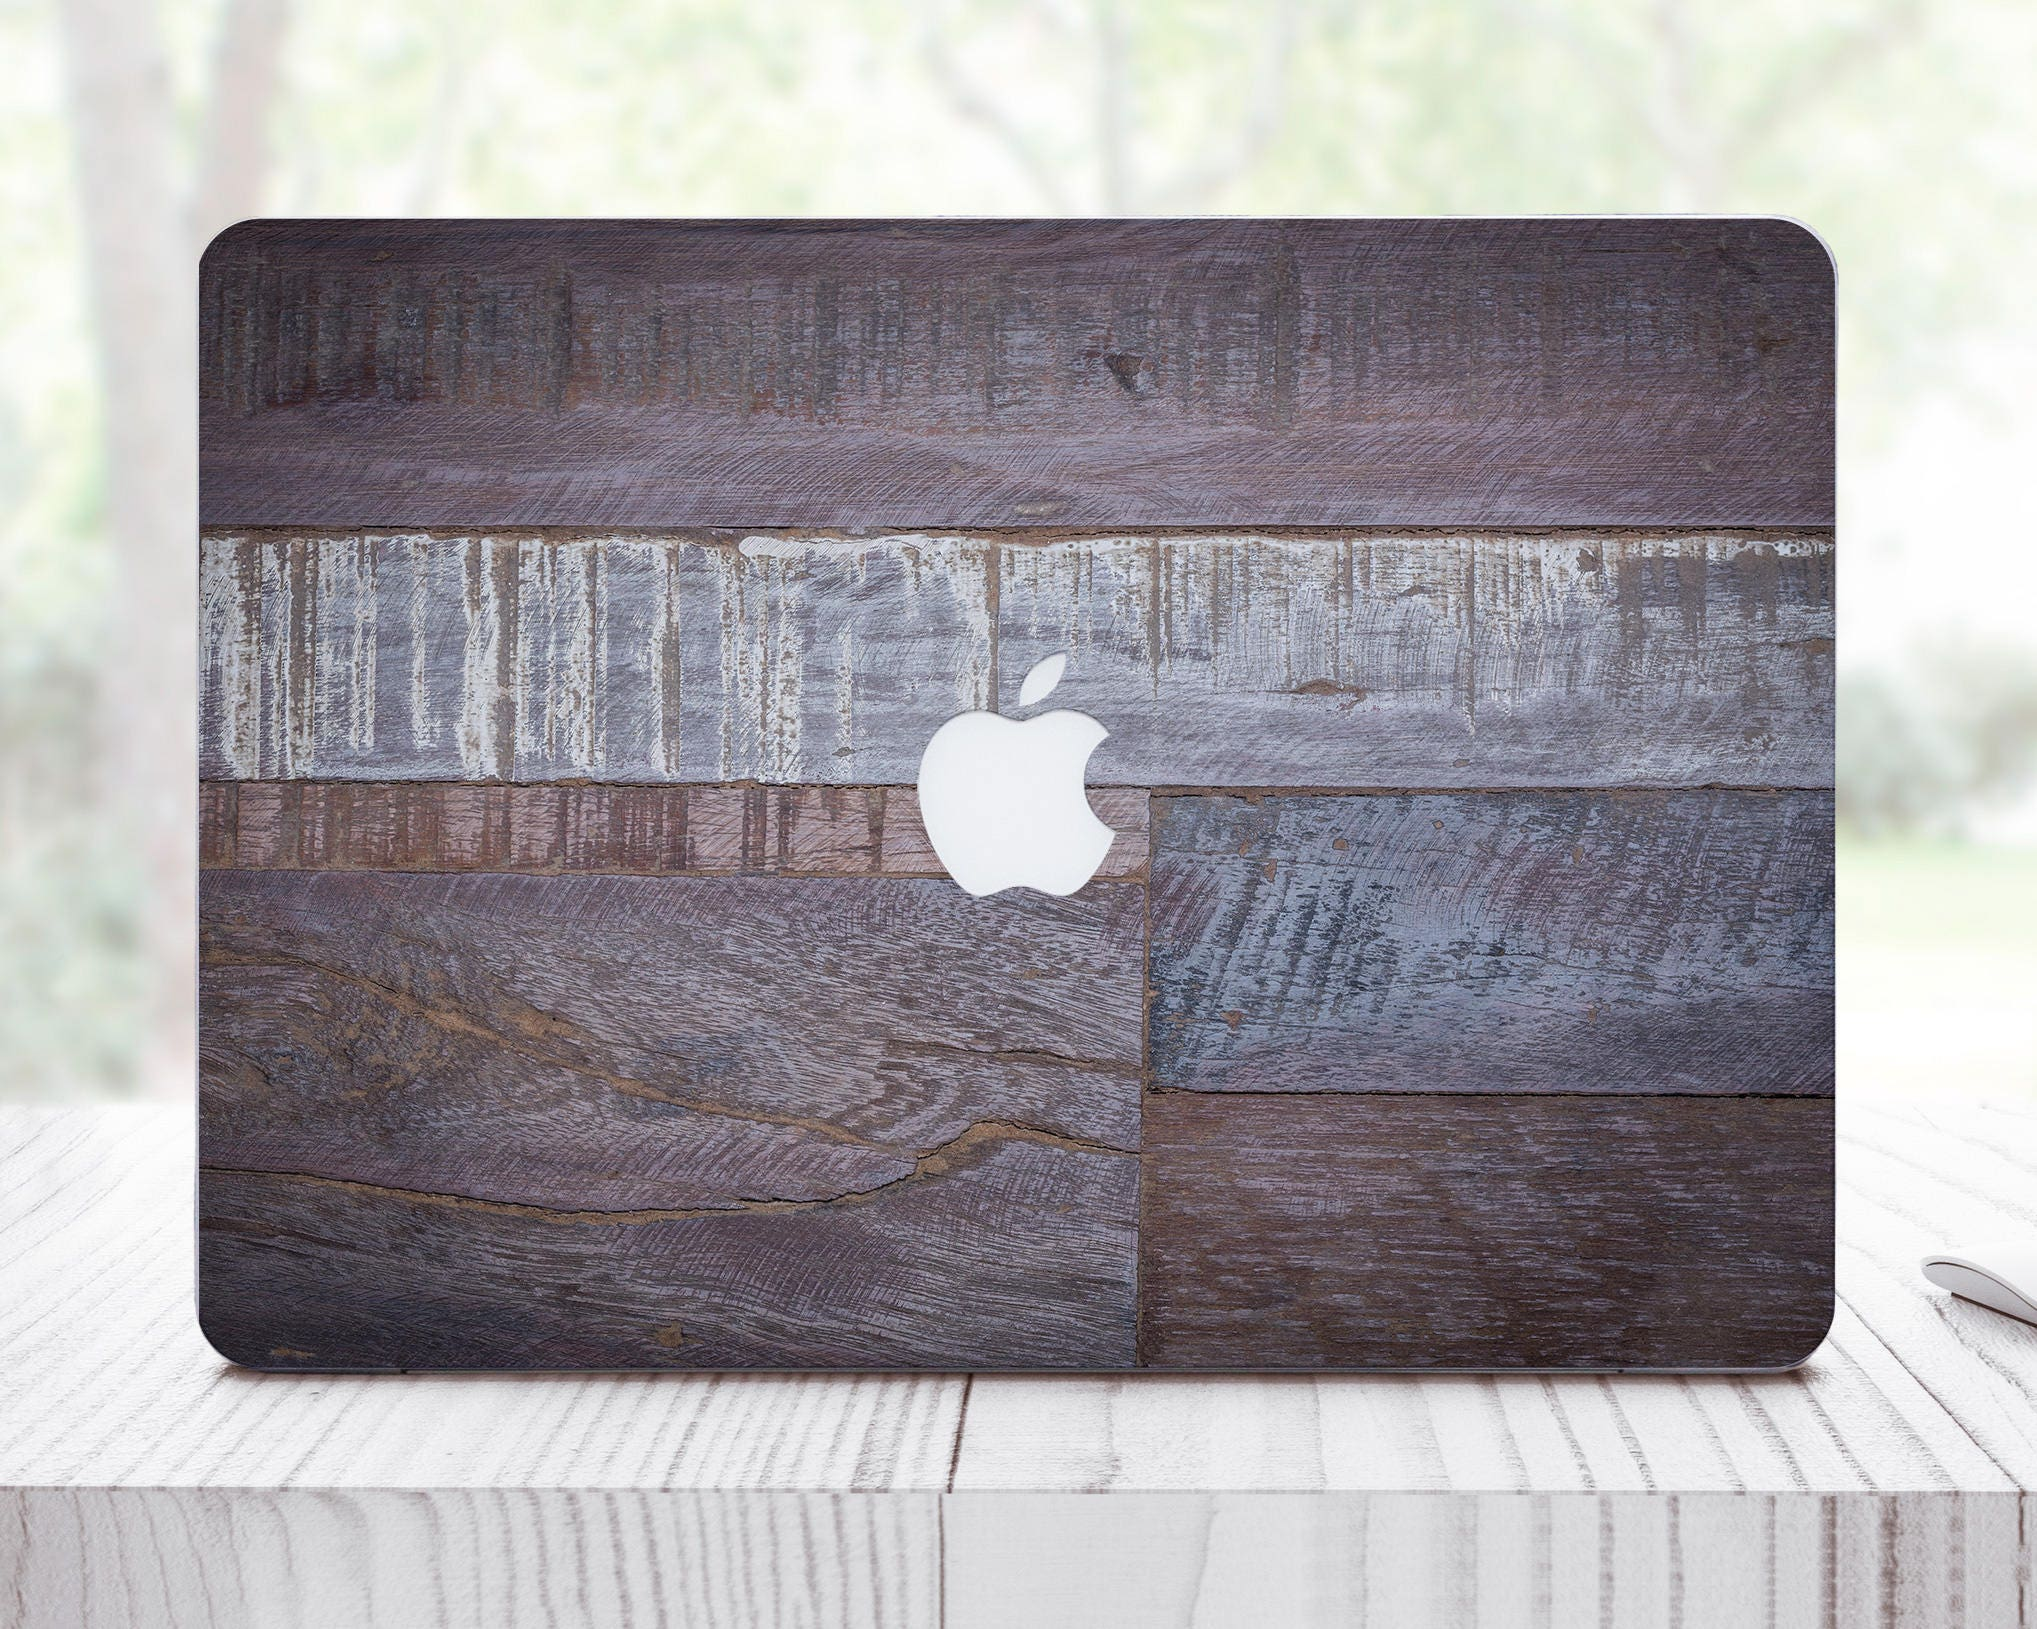 Wooden Sticker For MacBook Air 11 Sticker Mac Pro 15 Inch Sticker MacBook Pro Sticker 13 Inch Apple MacBook Skin MacBook Pro Retina ES0032